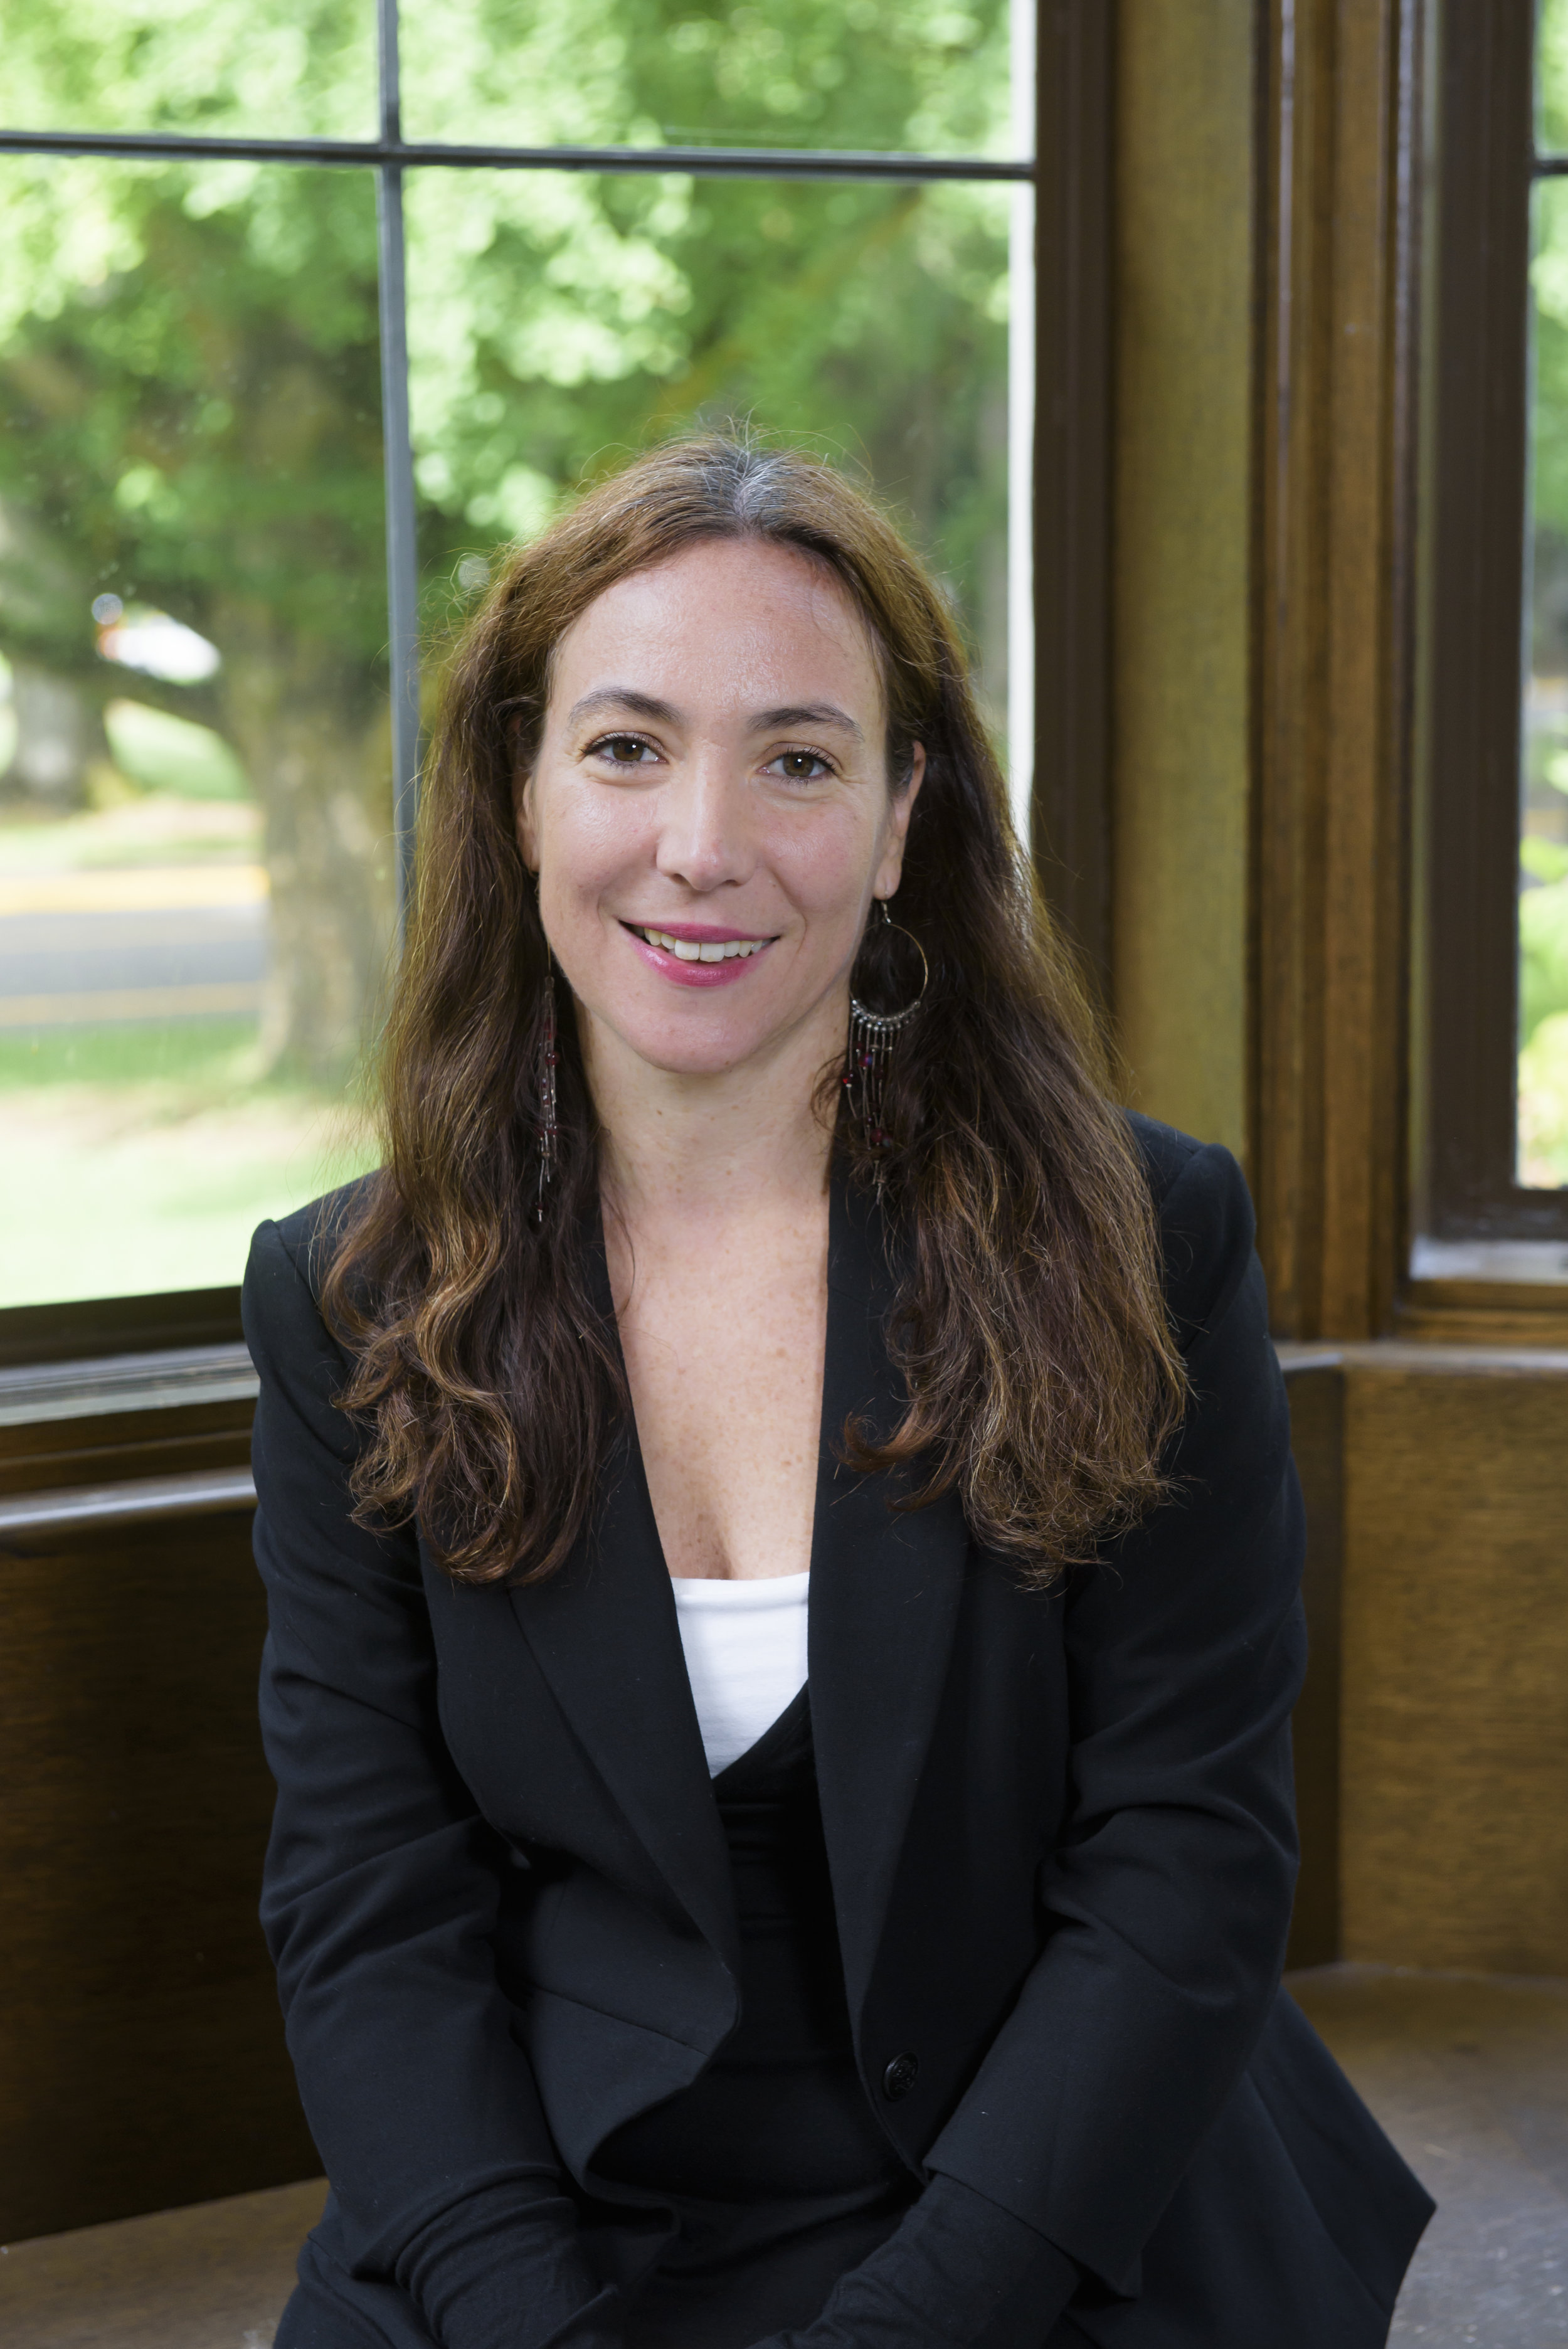 "- Mariela Daby is an Associate Professor of Political Science at Reed College, Portland, Oregon. Her research interests include distributive politics and gender, social movements, and political participation in Latin America. Her previous work has examined the incentives that contribute to the persistence of clientelism in consolidated democracies. Her book ""Mobilizing Poor Voters: Machine Politics, Clientelism and Social Networks in Argentina"" (Cambridge University Press) explains why candidates use clientelistic strategies to mobilize poor voters using network analysis and quantitative and qualitative data. Her articles have appeared in journals such as Comparative Politics, Party Politics, Social Networks, Latin American Research Review, and Latin American Politics and Society.Prof. Daby has received fellowships and grants from the Kellogg Institute for International Studies, the Yale Program on Democracy, the Andrew W. Mellon Foundation, the Social Science Research Council, and the Fulbright Commission among others. She received a PhD in Political Science from the University of Chicago.She teaches courses on politics, poverty and development in the Global South, social movements and contentious politics, and human rights and violence in Latin America. Professor Daby also teaches about inequality in the US, Central and South America, and introductory courses to Comparative Politics."